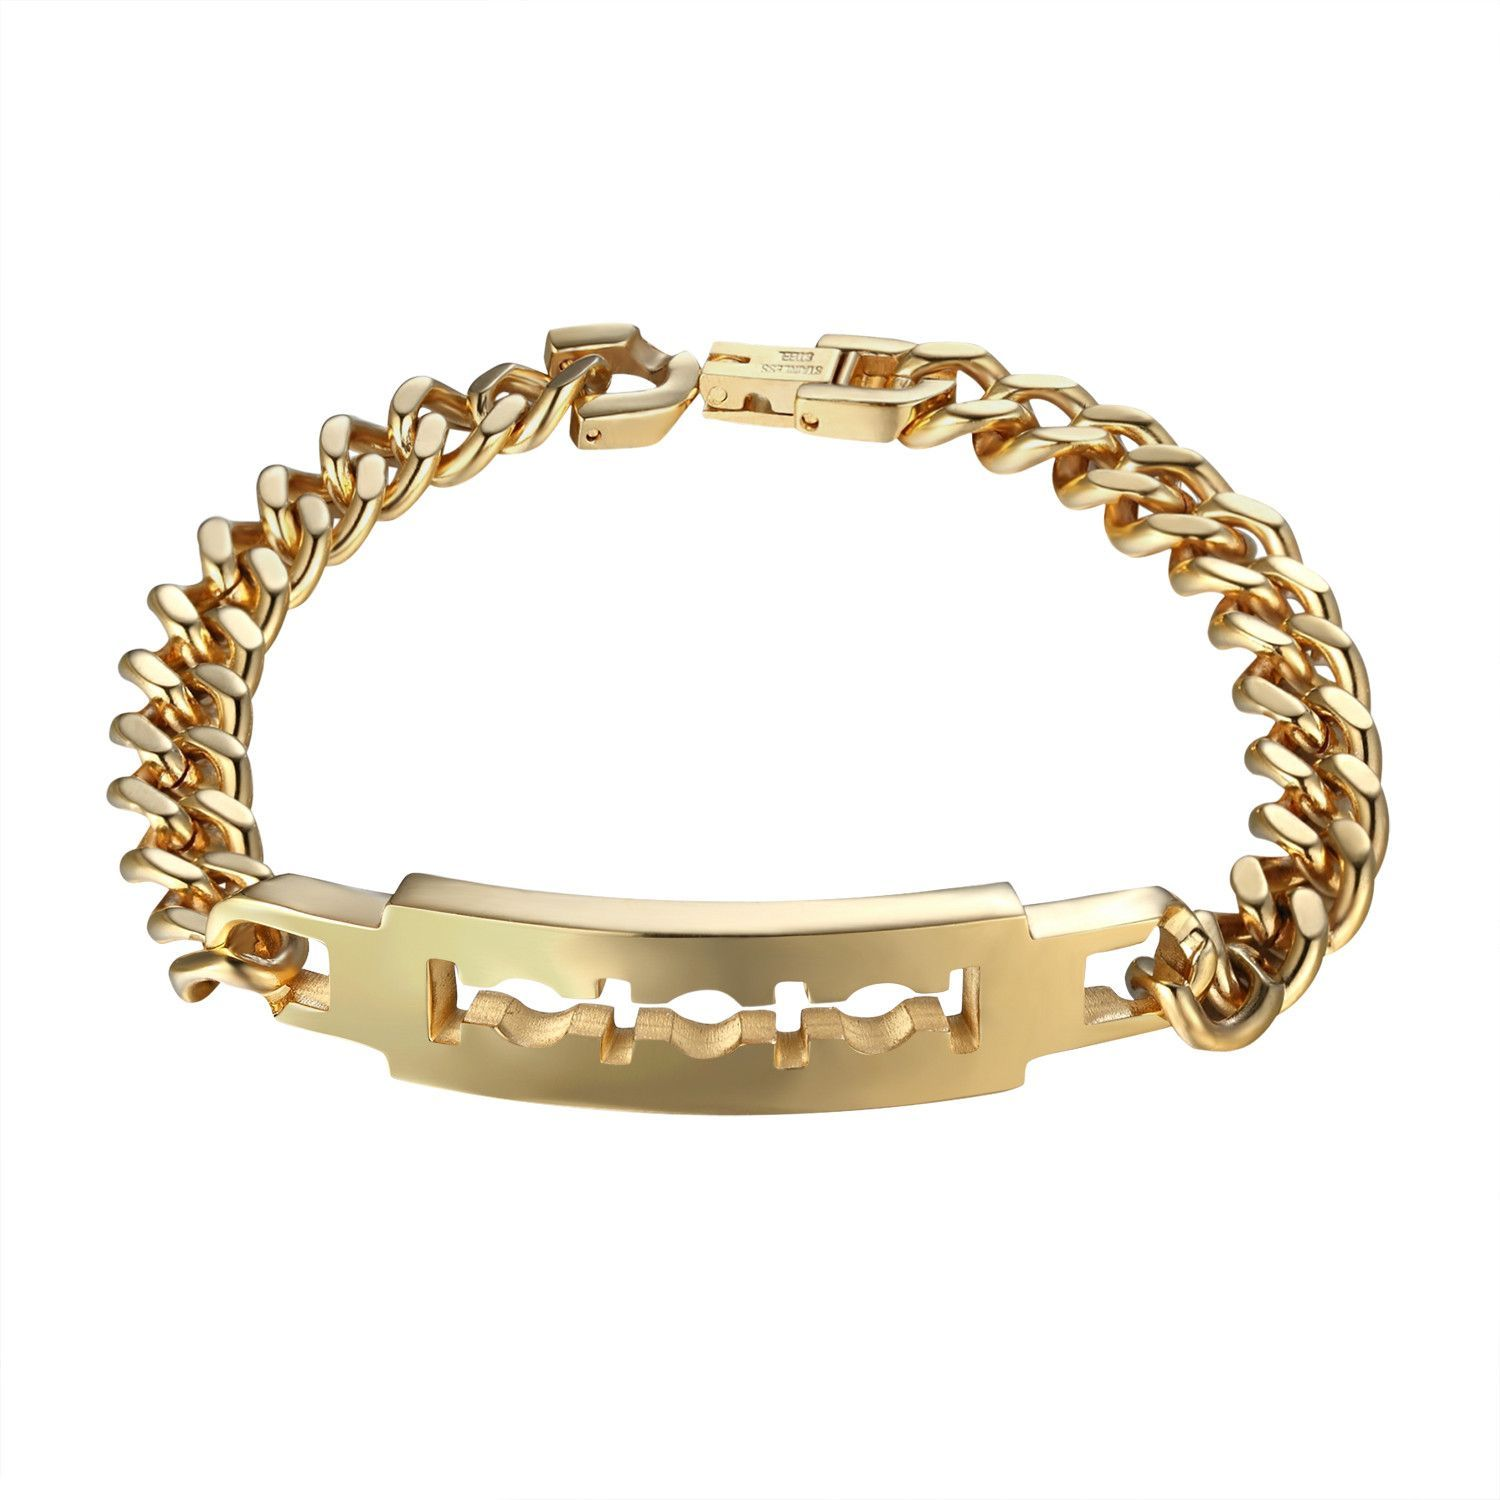 Razor blade design bracelet stainless steel mens k gold finish